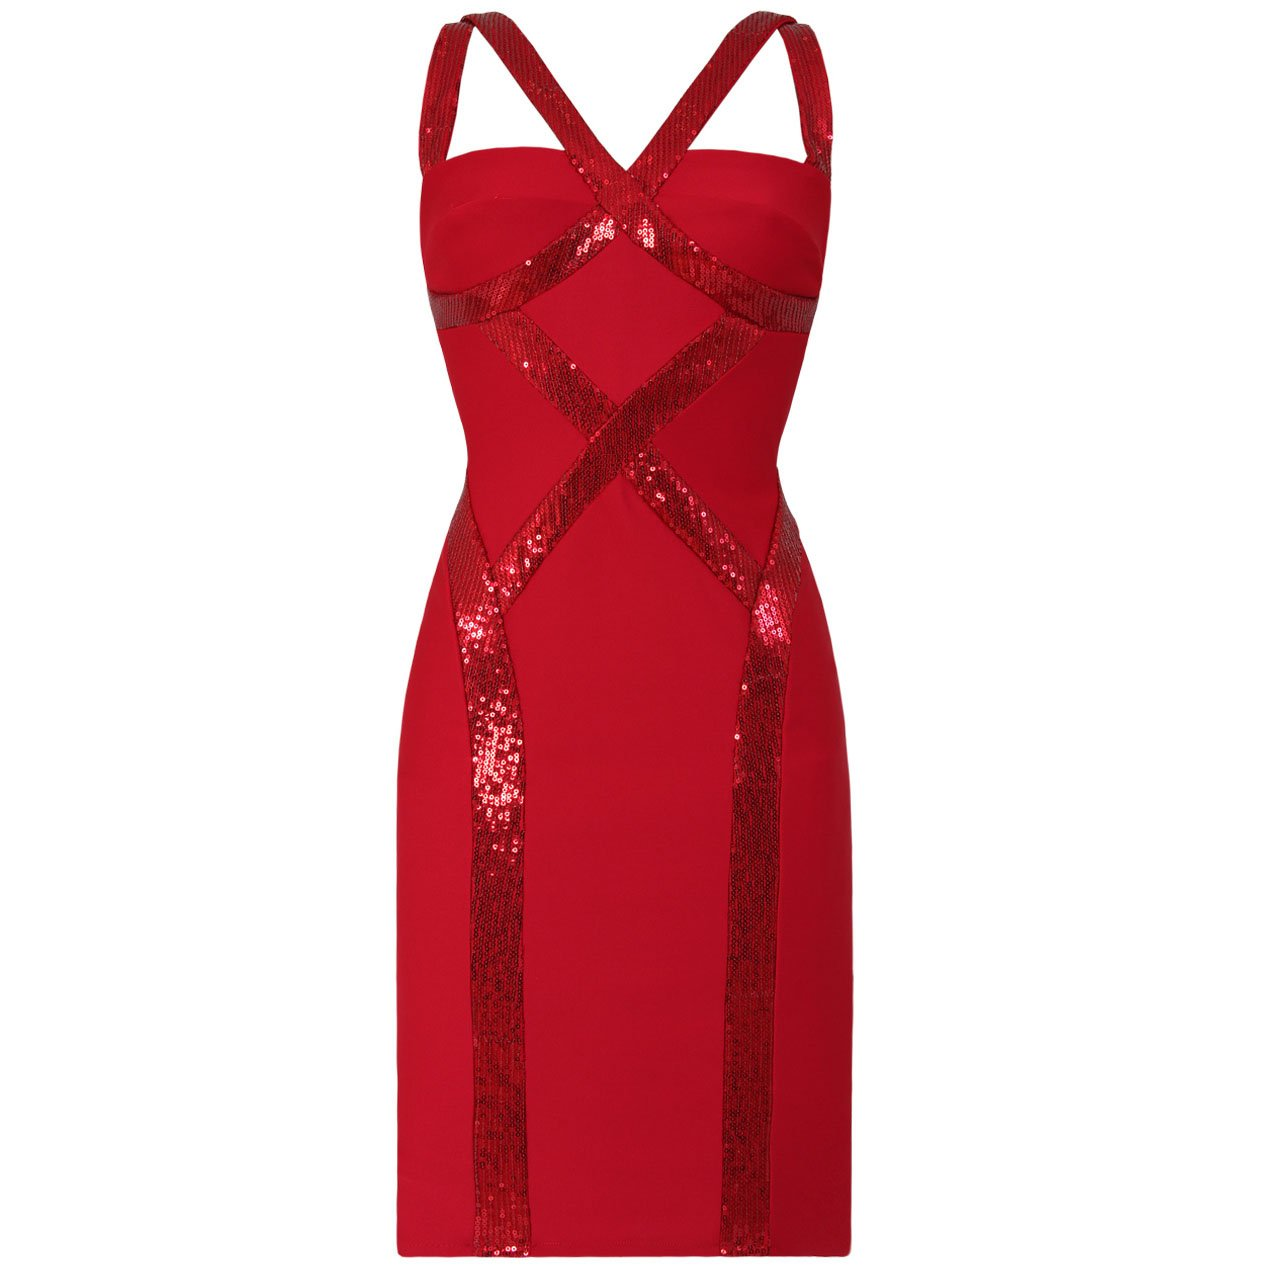 RED SEQUIN BANDAGE EVENING COCKTAIL BODYCON CLUBWEAR MINI PROM PARTY DRESS UK 14, US 10